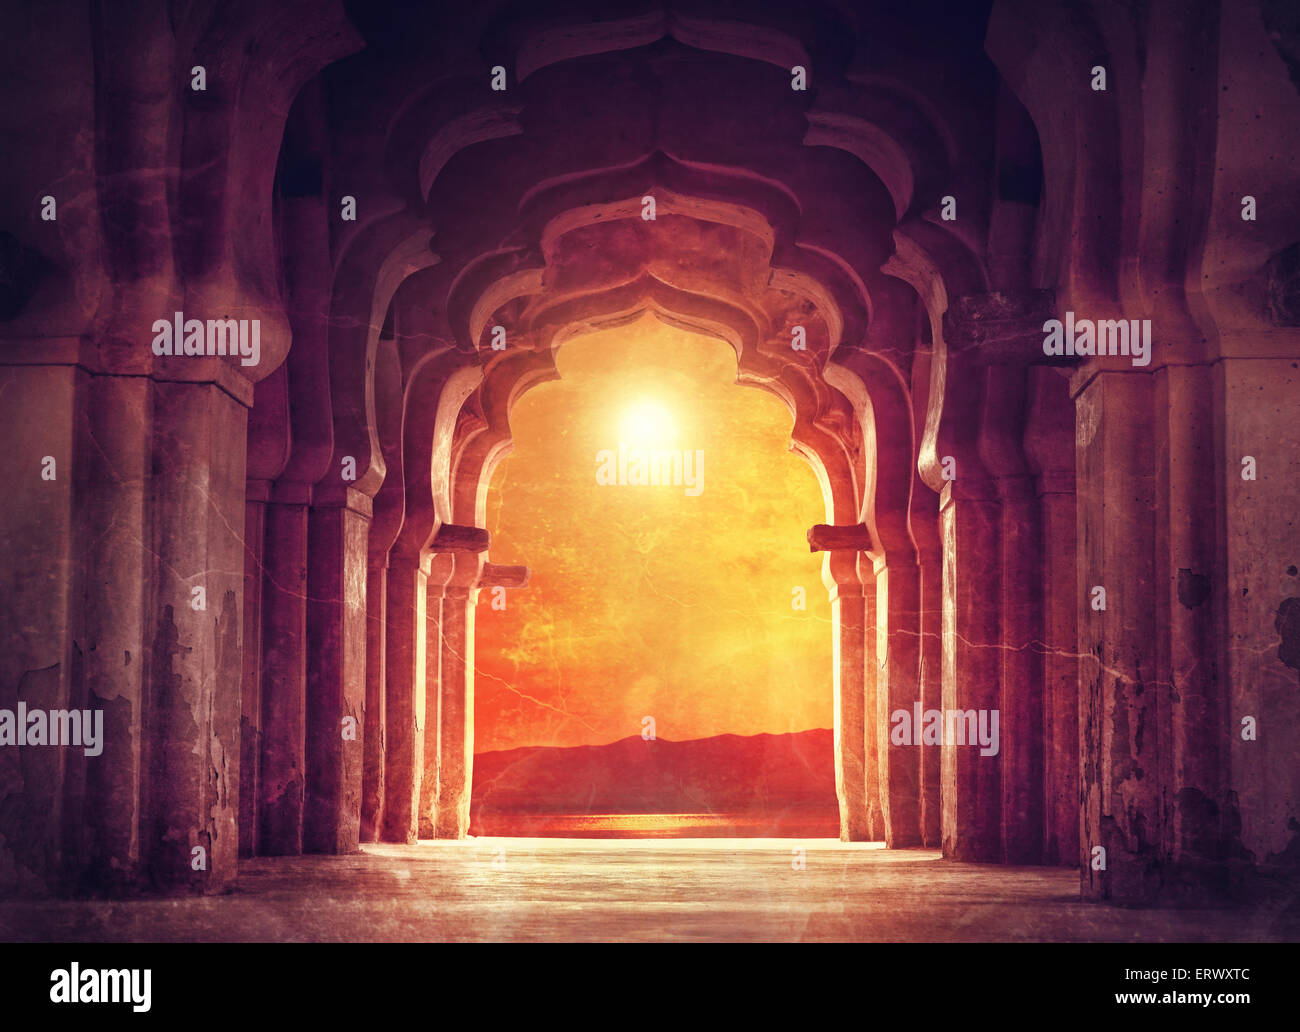 Old ruined arch in ancient temple at sunset in India - Stock Image